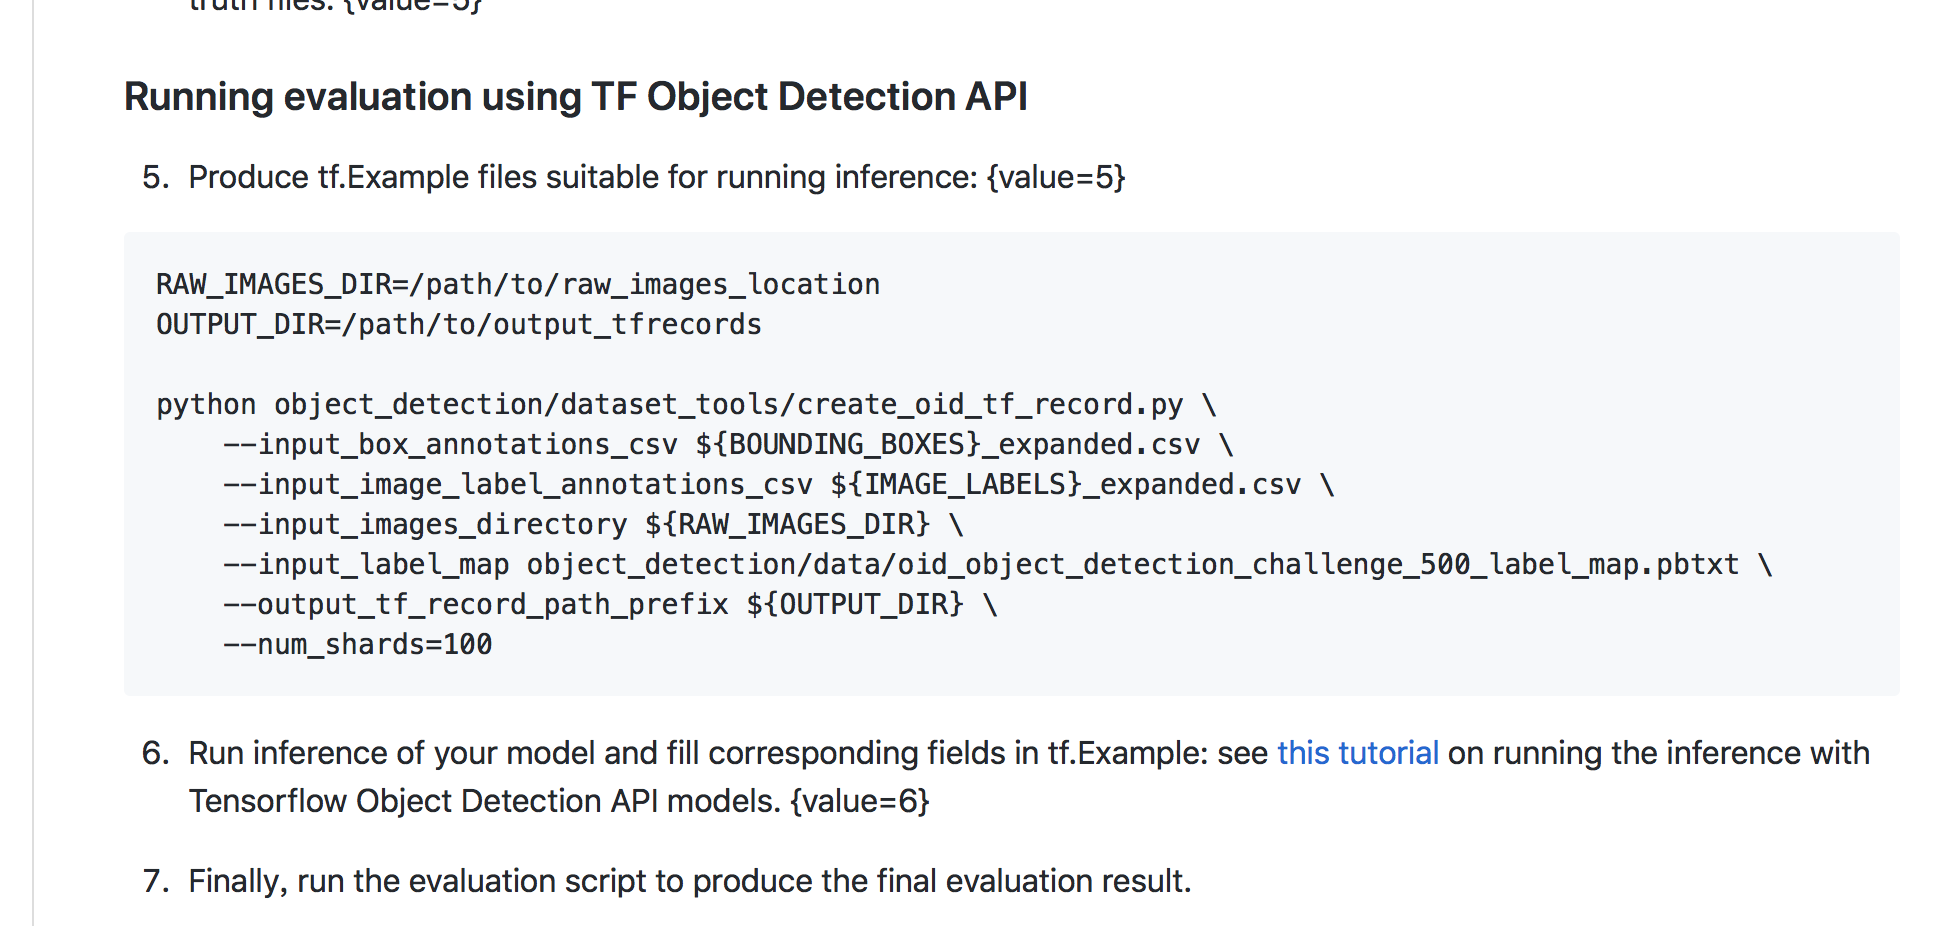 How to use tensorflow API to running the Evaluation program